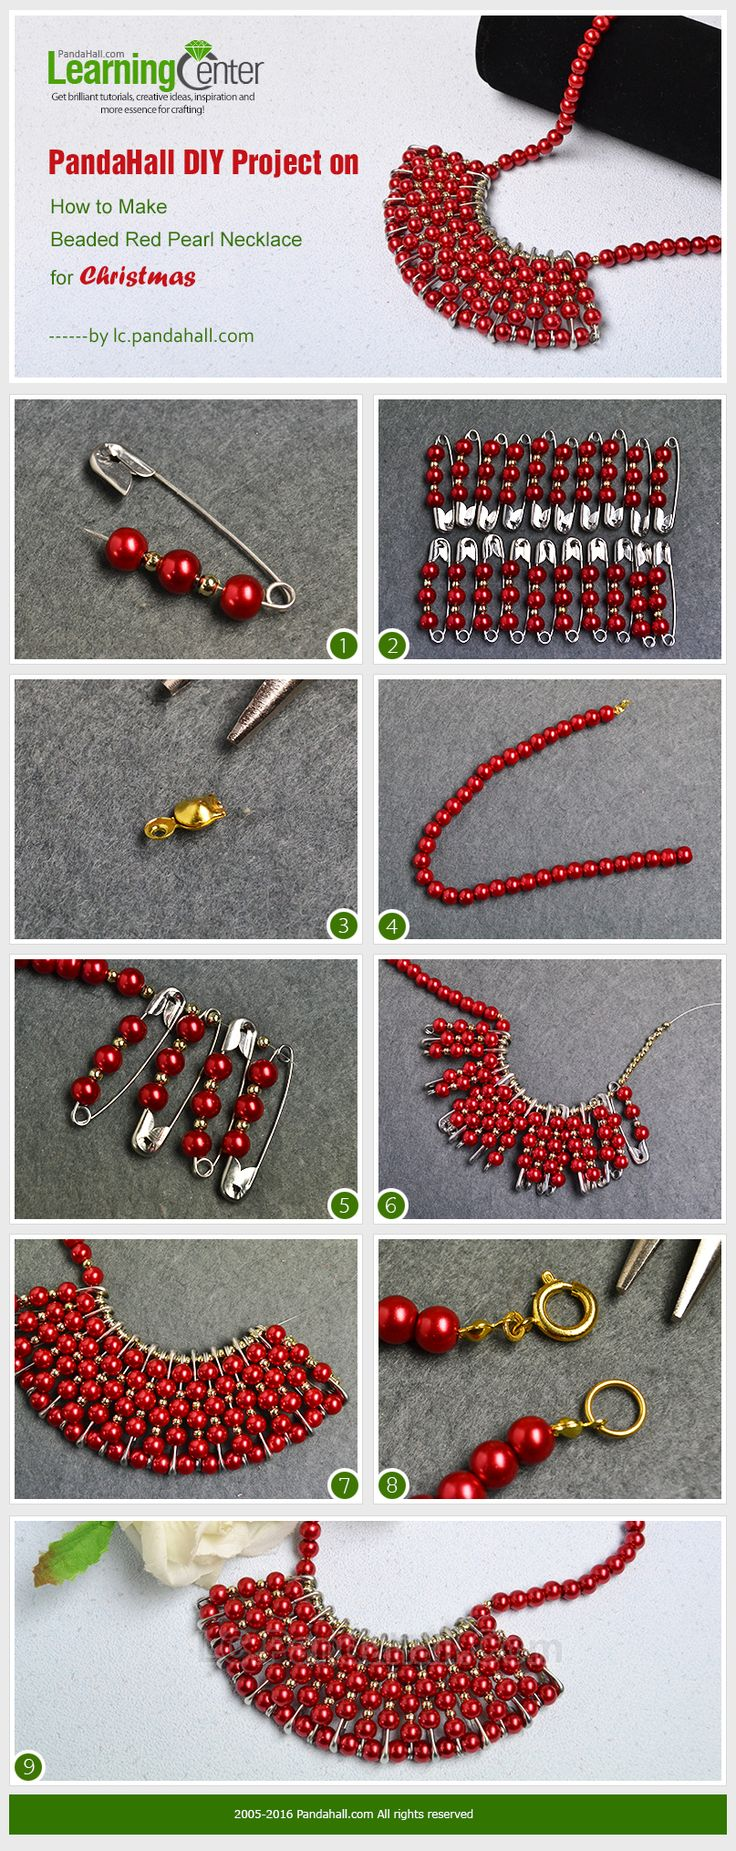 PandaHall DIY Project on How to Make Beaded Red Pearl Necklace for Christmas from LC.Pandahall.com